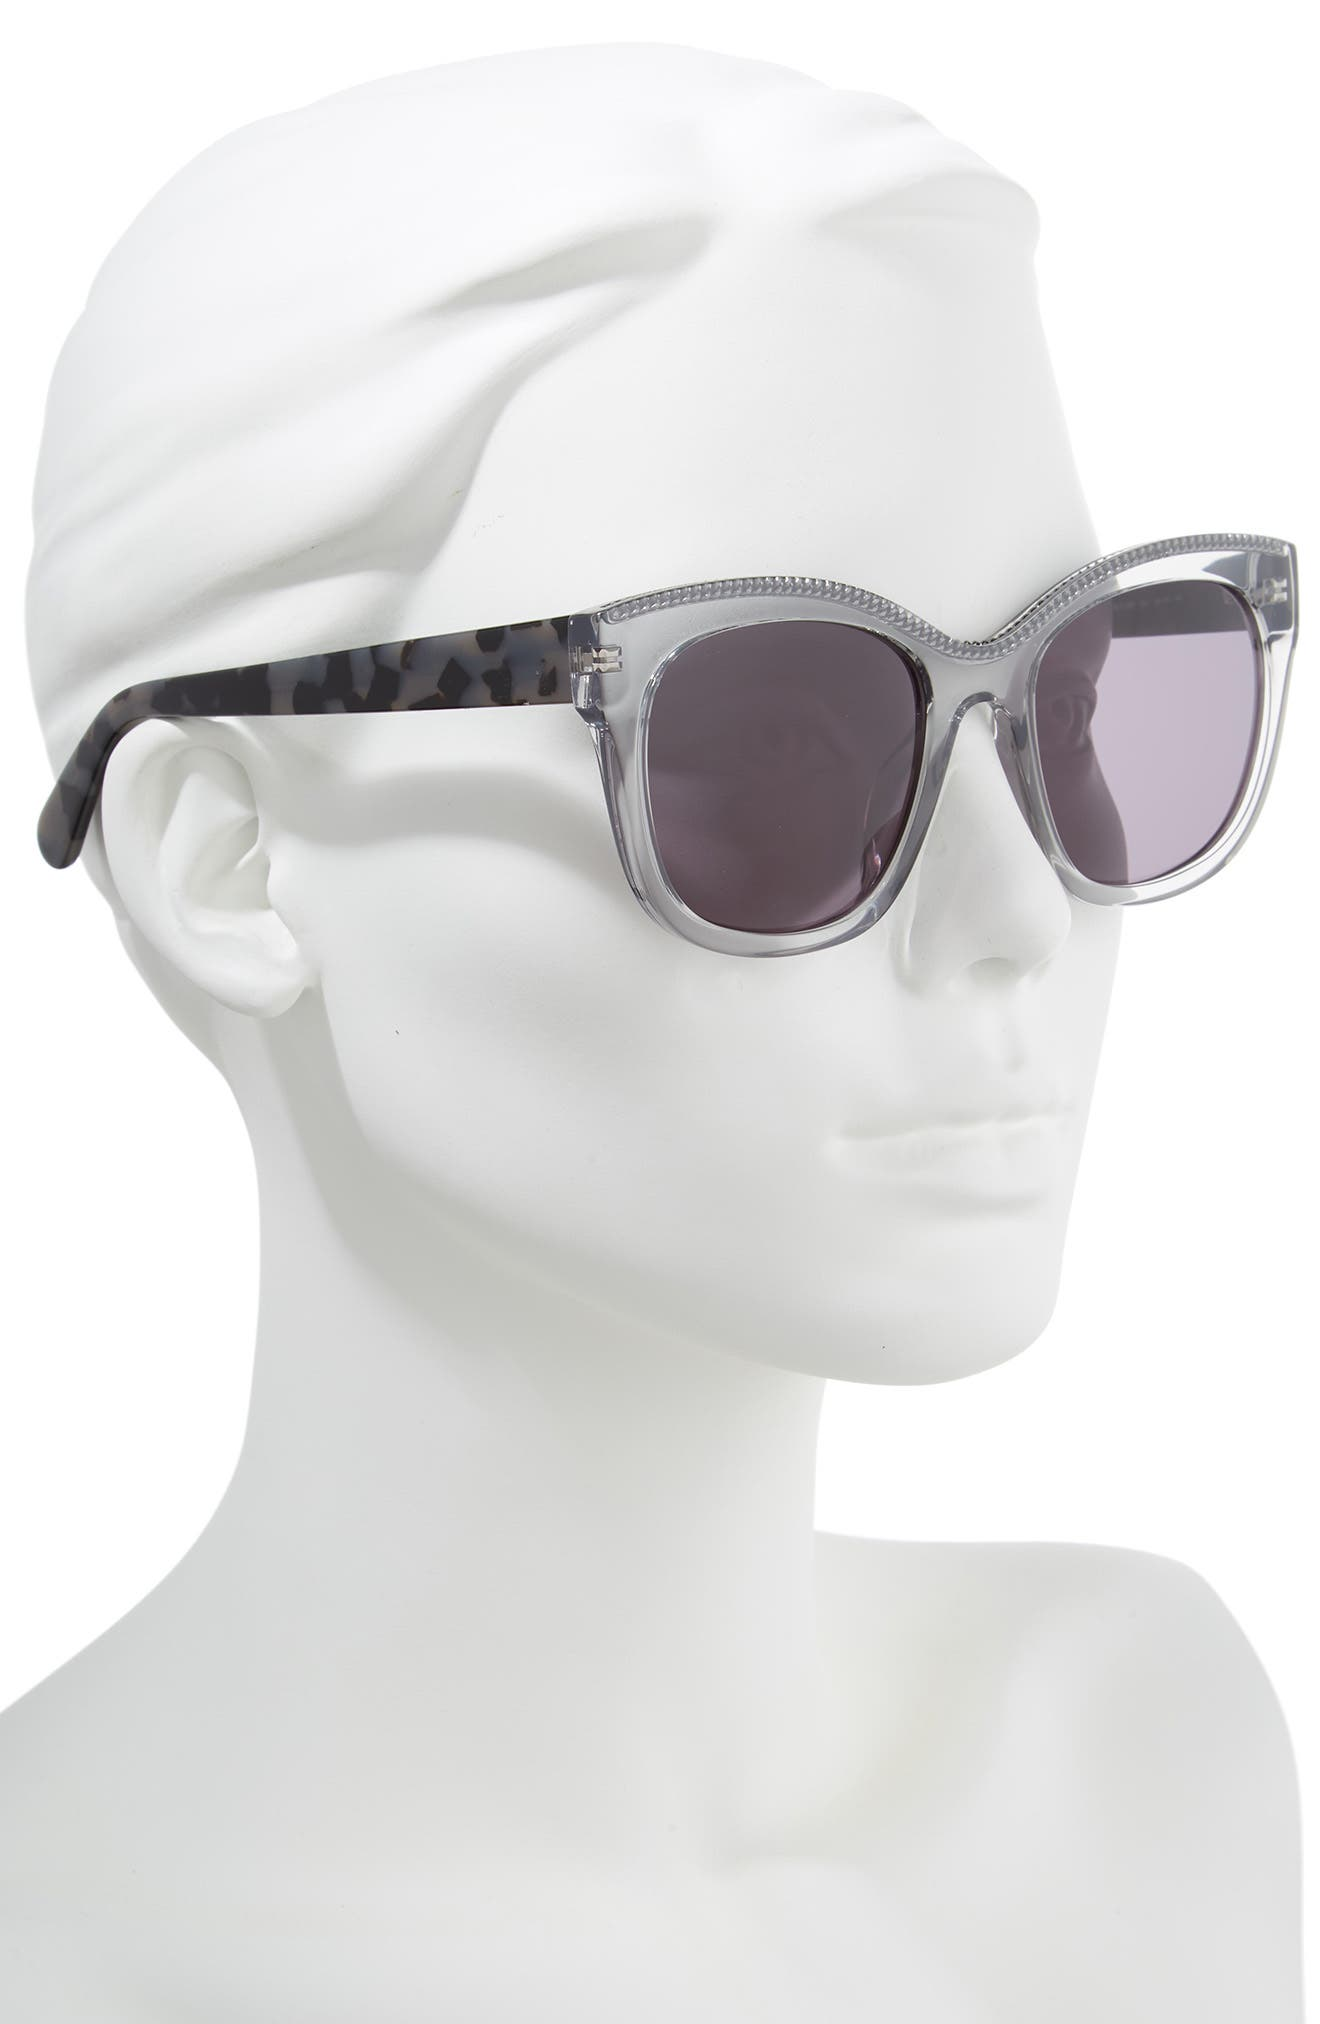 54mm Sunglasses,                             Alternate thumbnail 2, color,                             GREY HAVANA